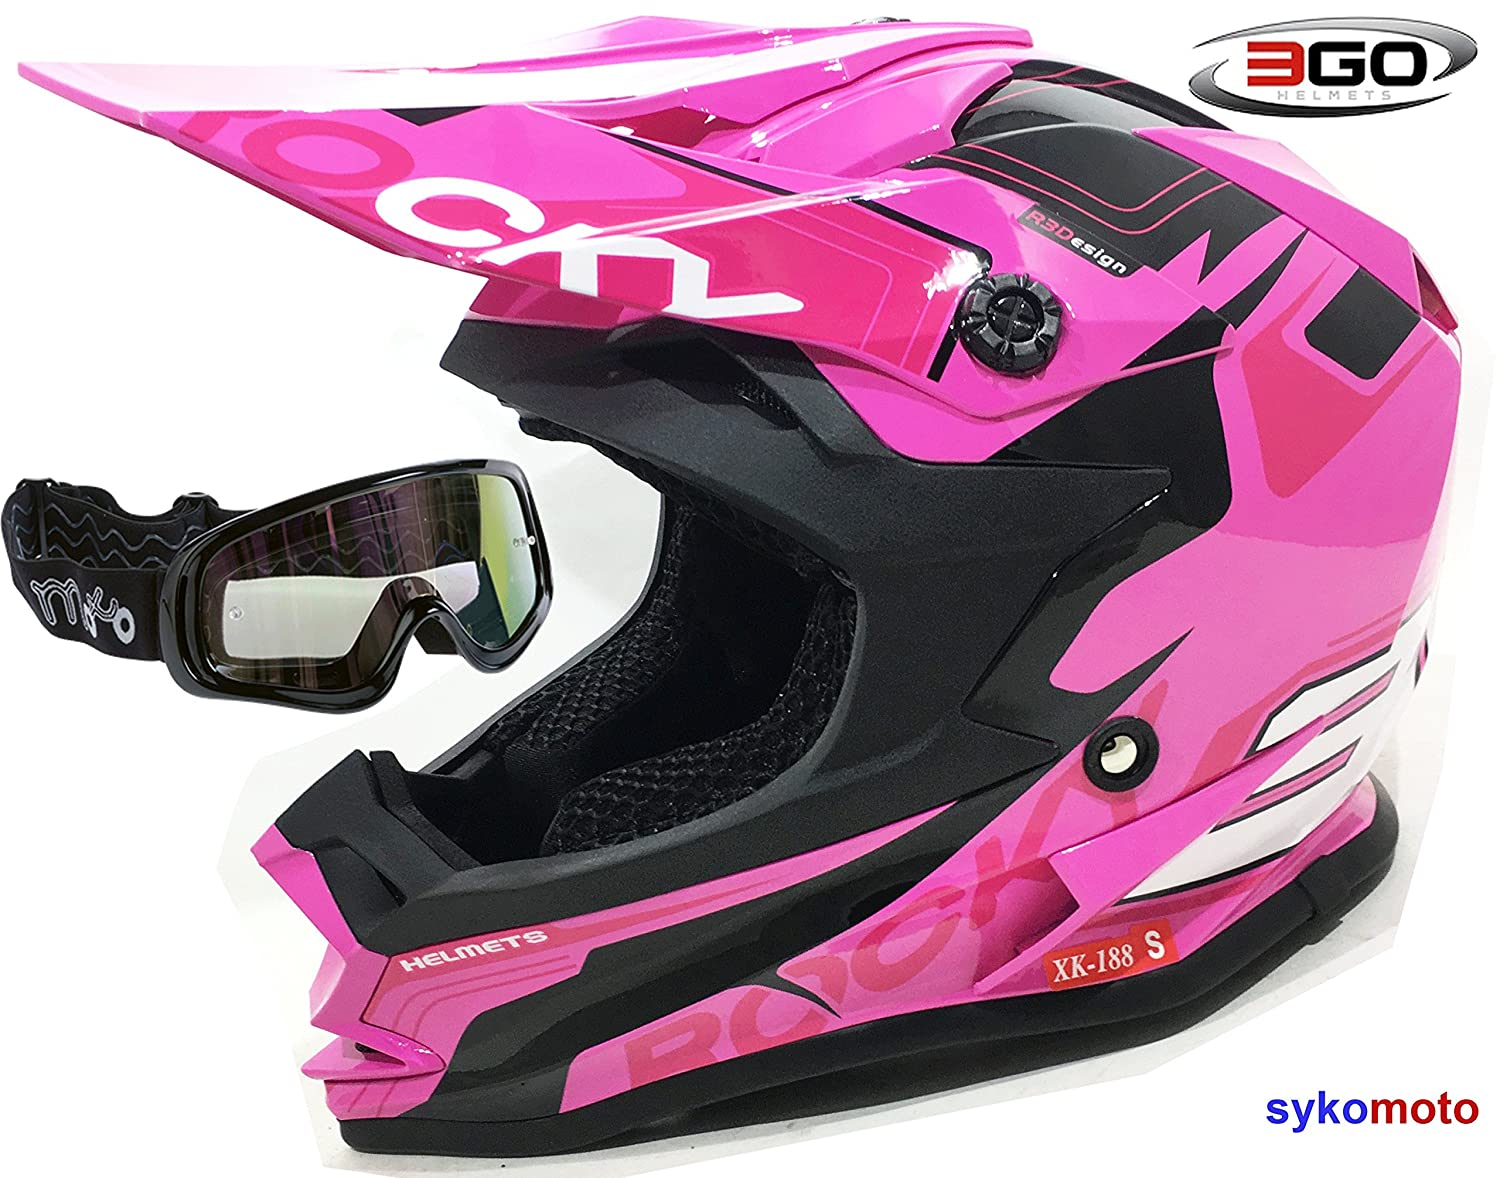 3GO XK188 ROCKY CASCO DE CHICAS NIÑ AS MOTOCROSS OFF ROAD ATV QUAD ENDURO ROSA CON GAFAS NEGRO (XL (53 - 54 CM))